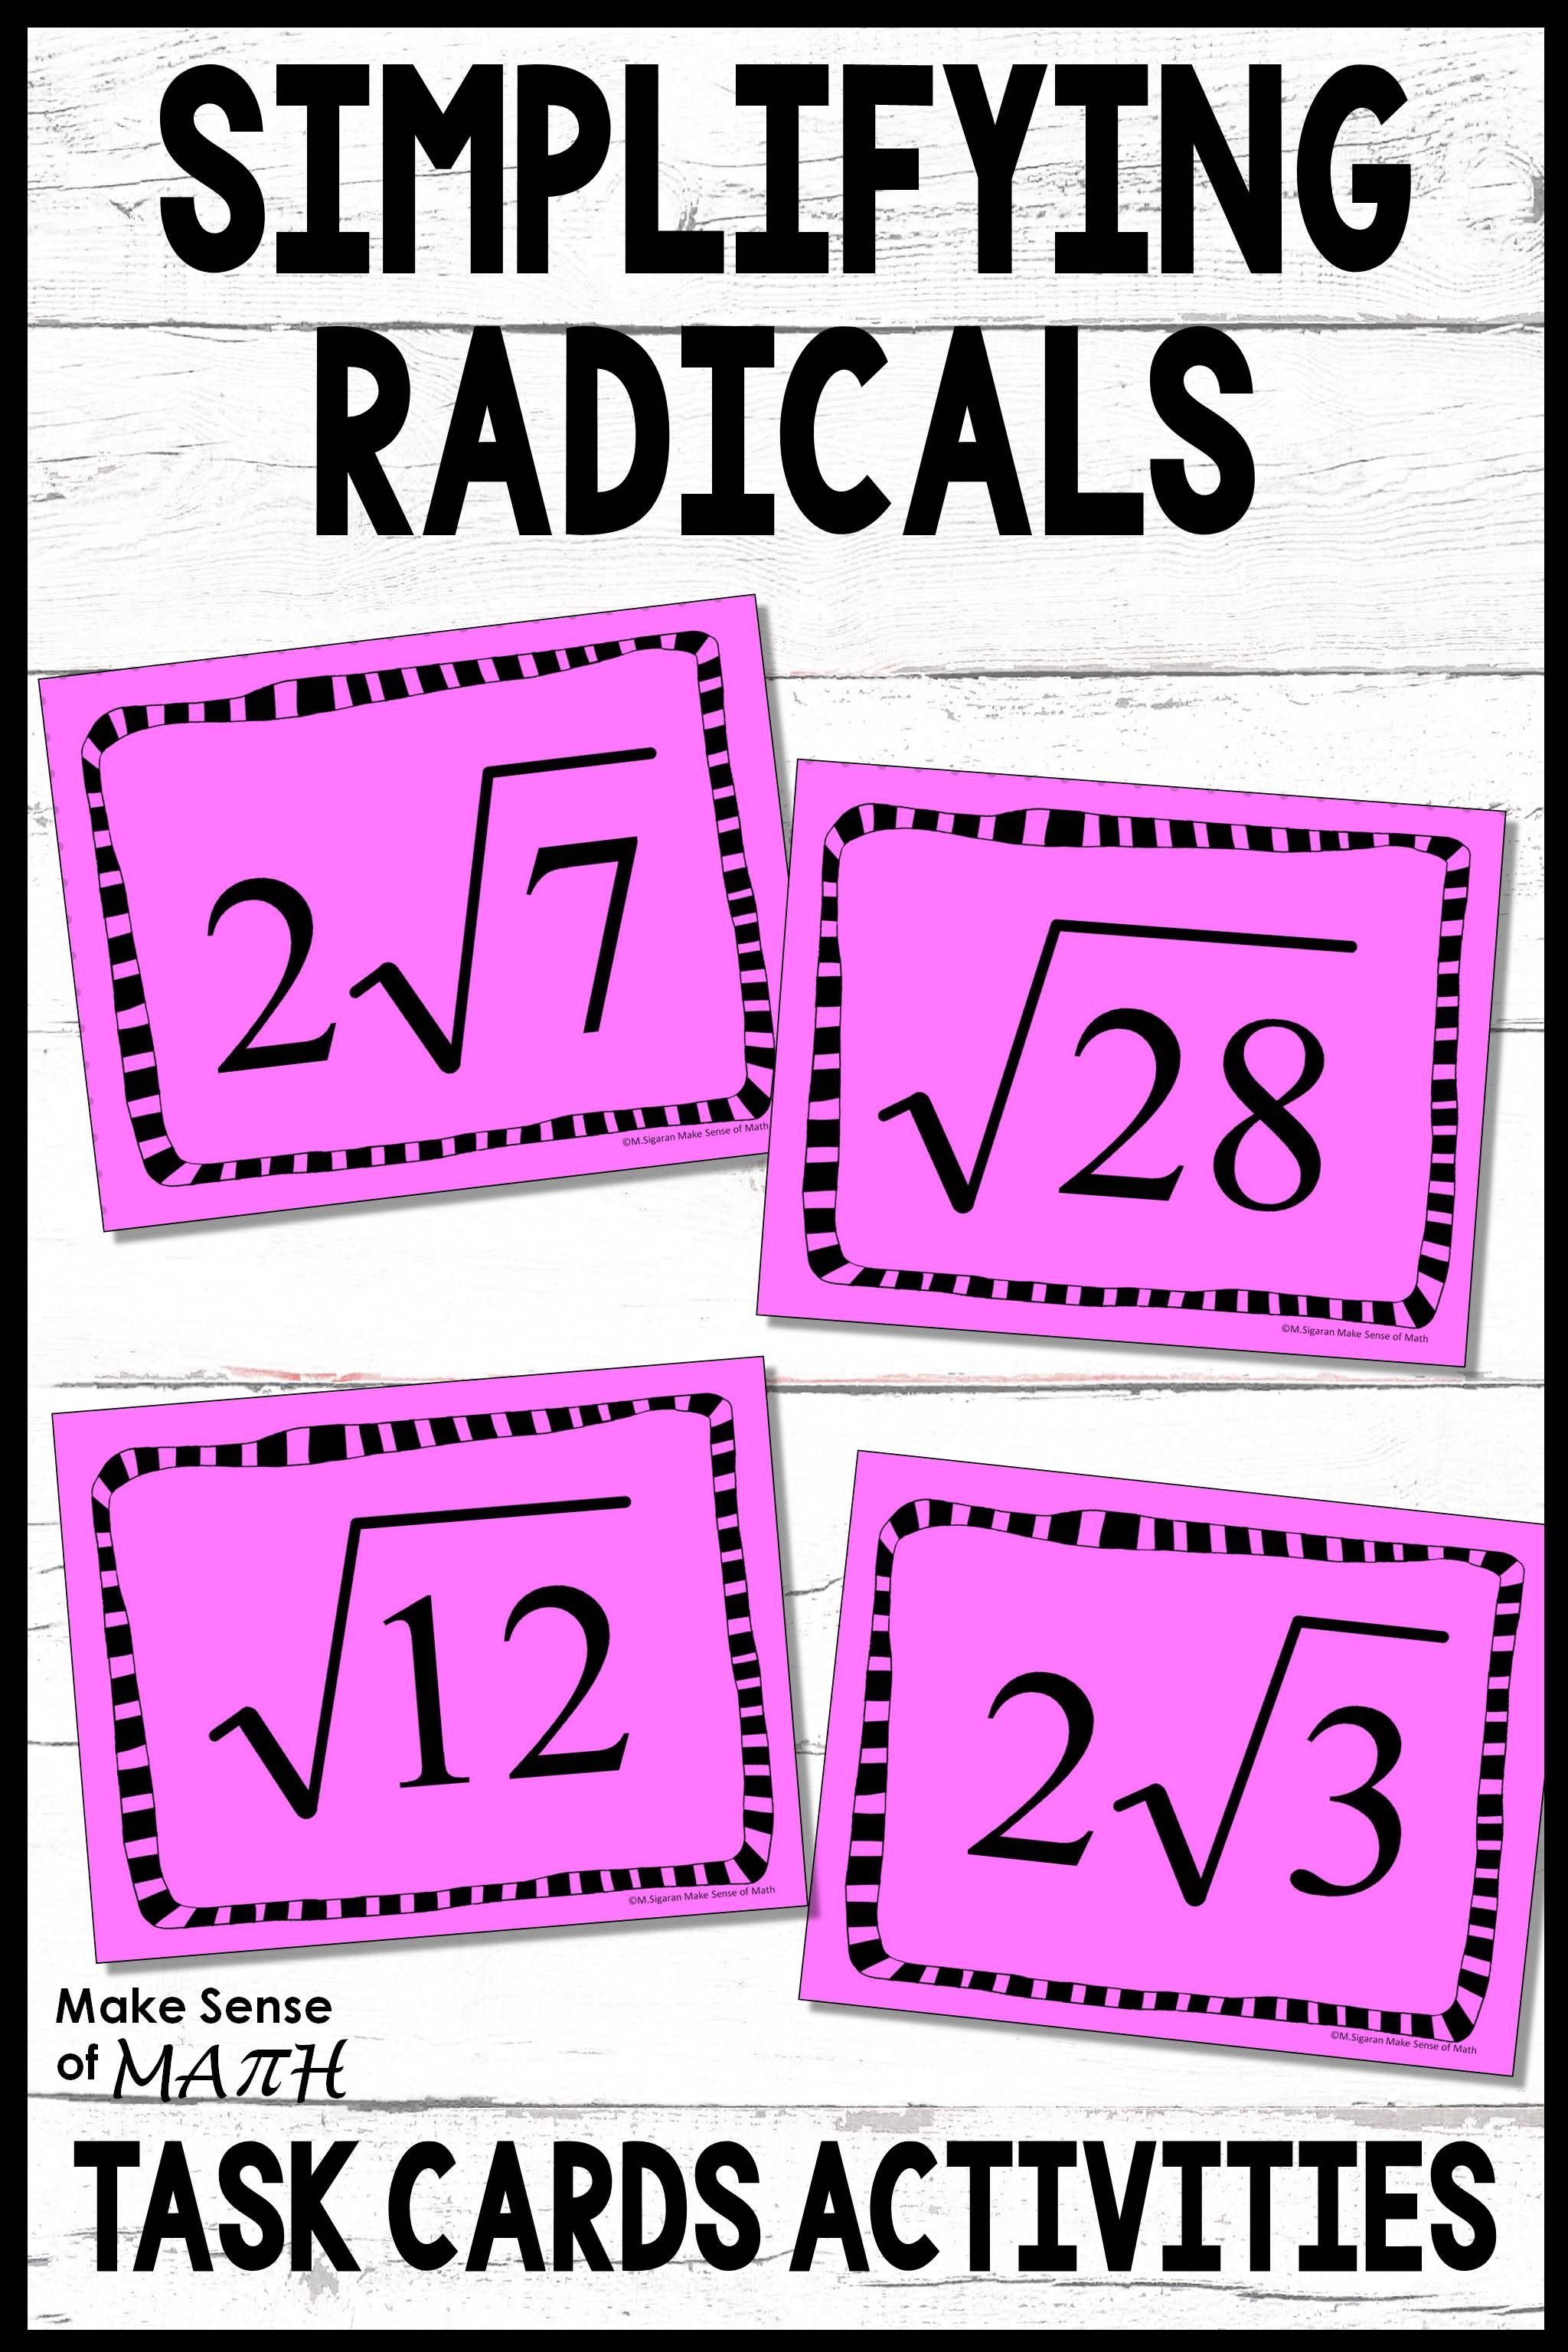 Check Out These Fun And Engaging Simplifying Radicals